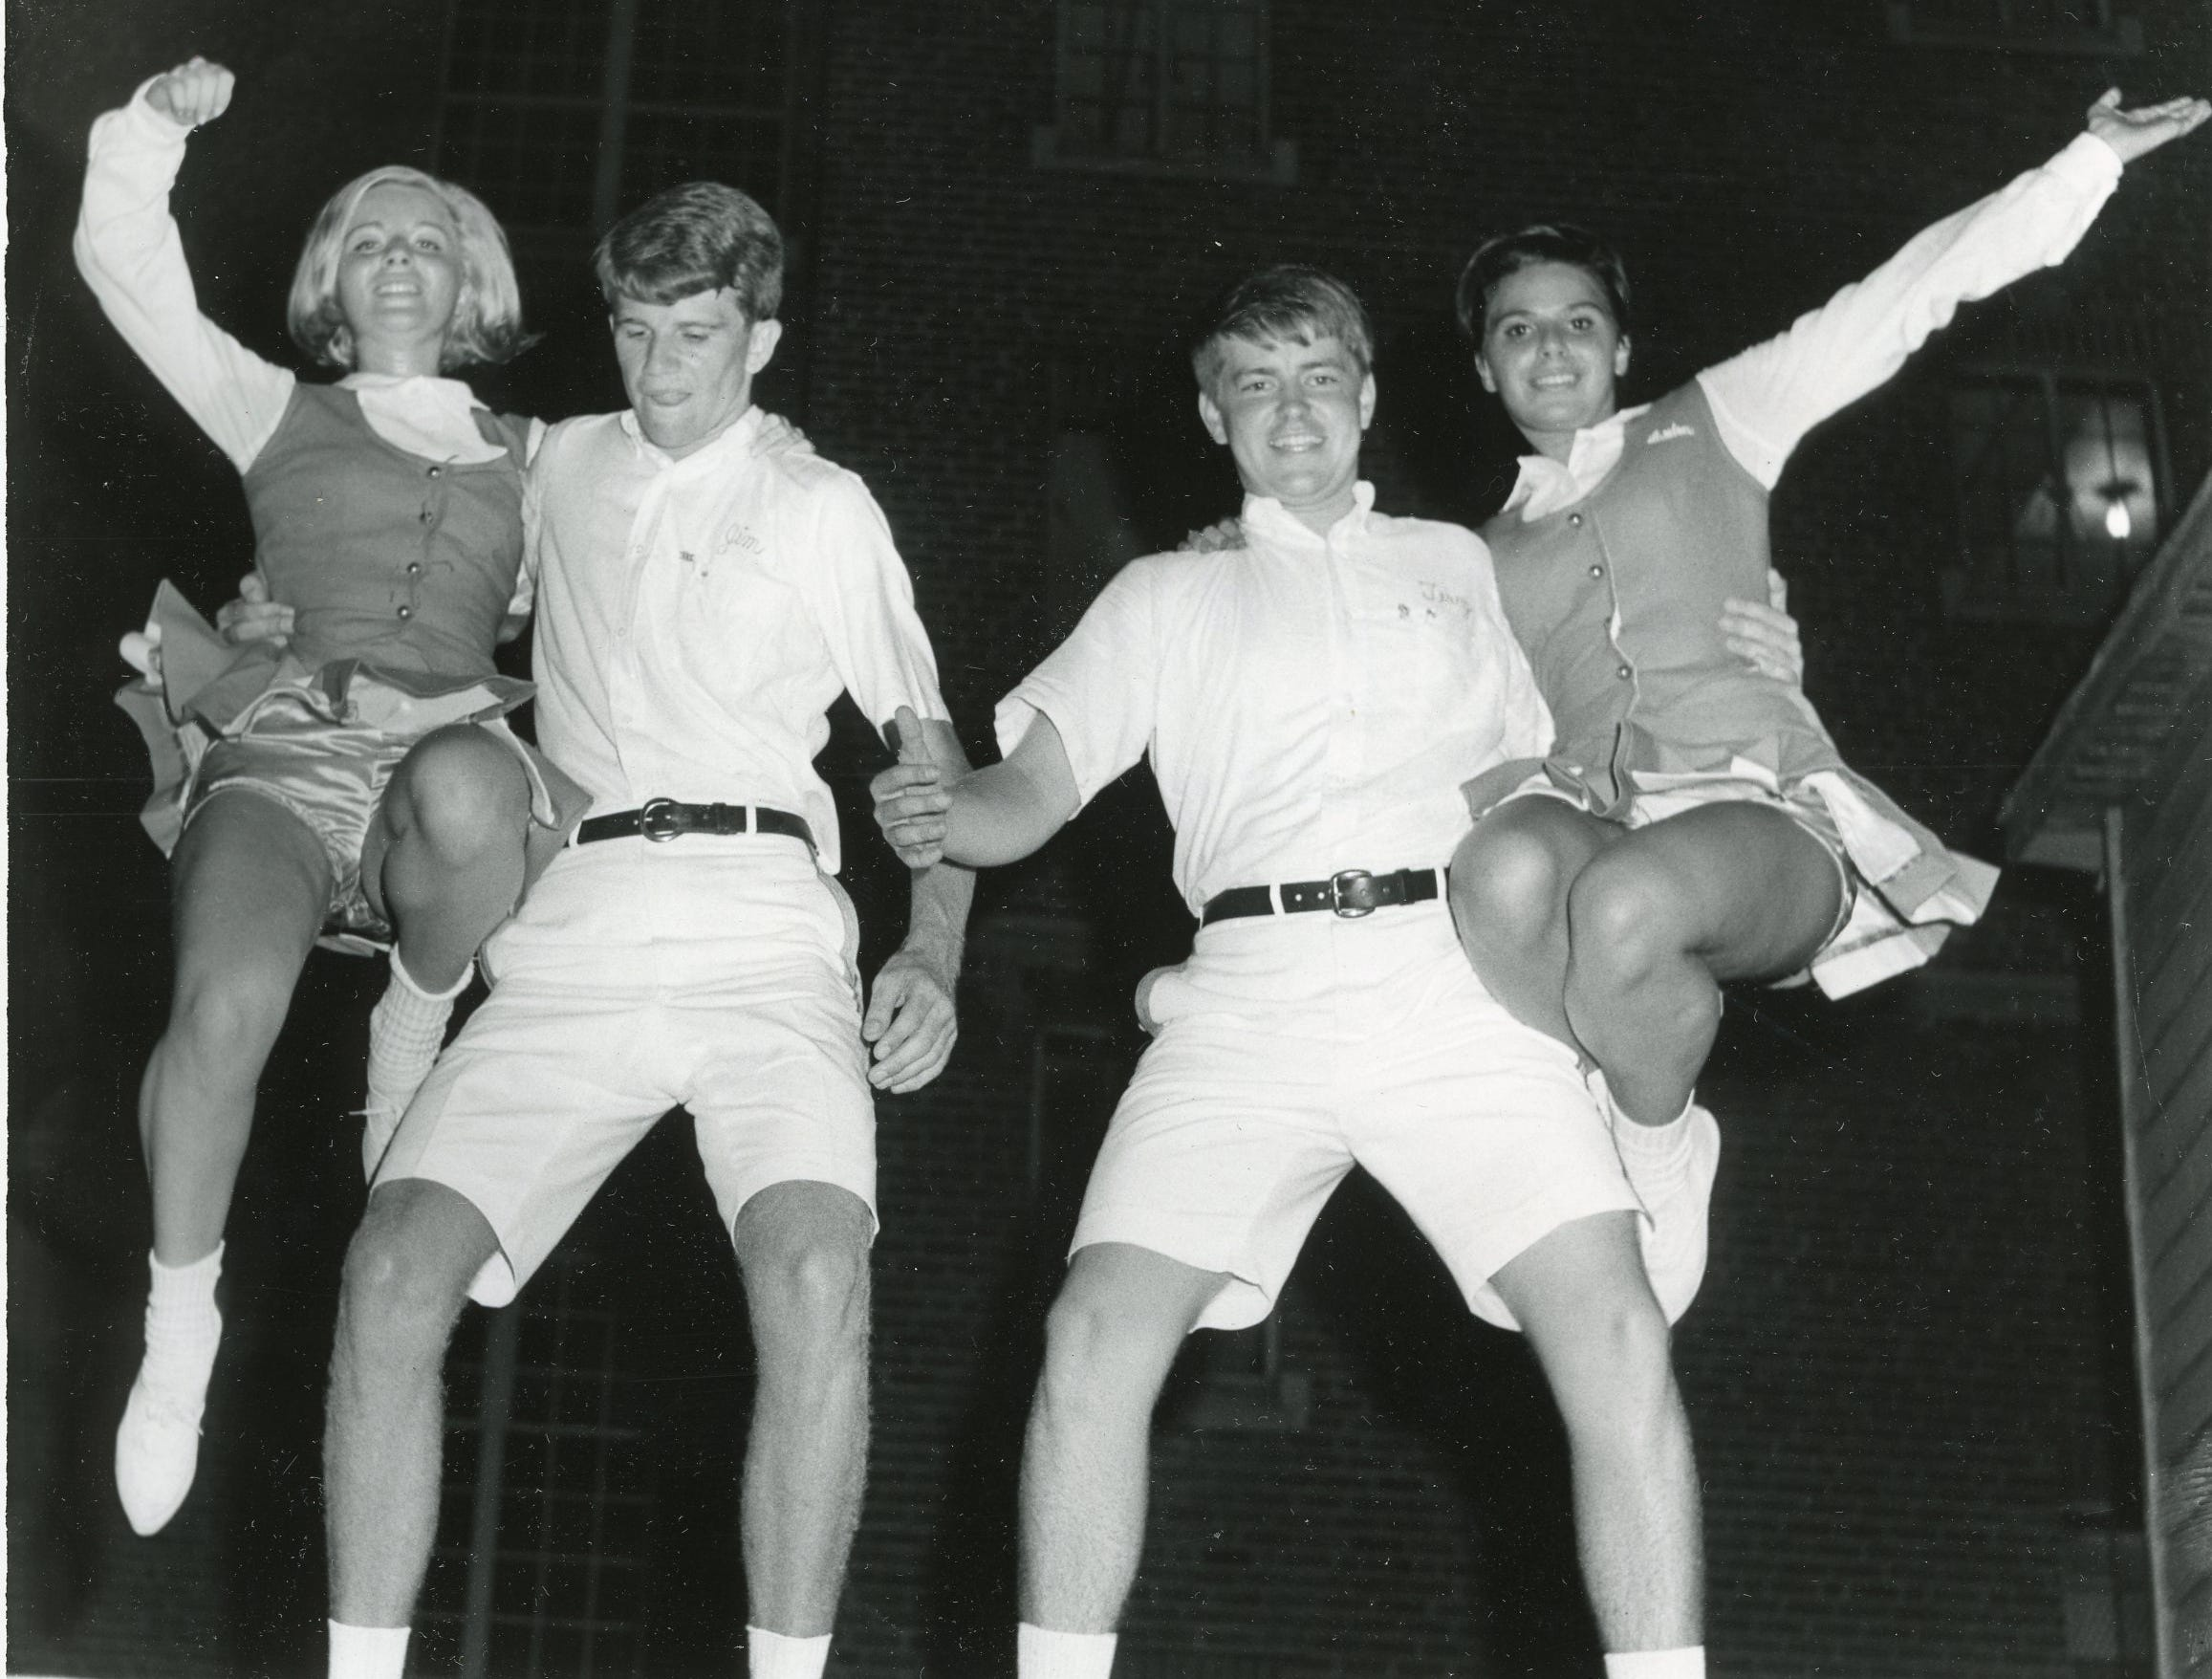 Mary Huddleston, Jim O'Steen, Terry Abernathy and Arden Sampson perform a stunt. September, 1965.